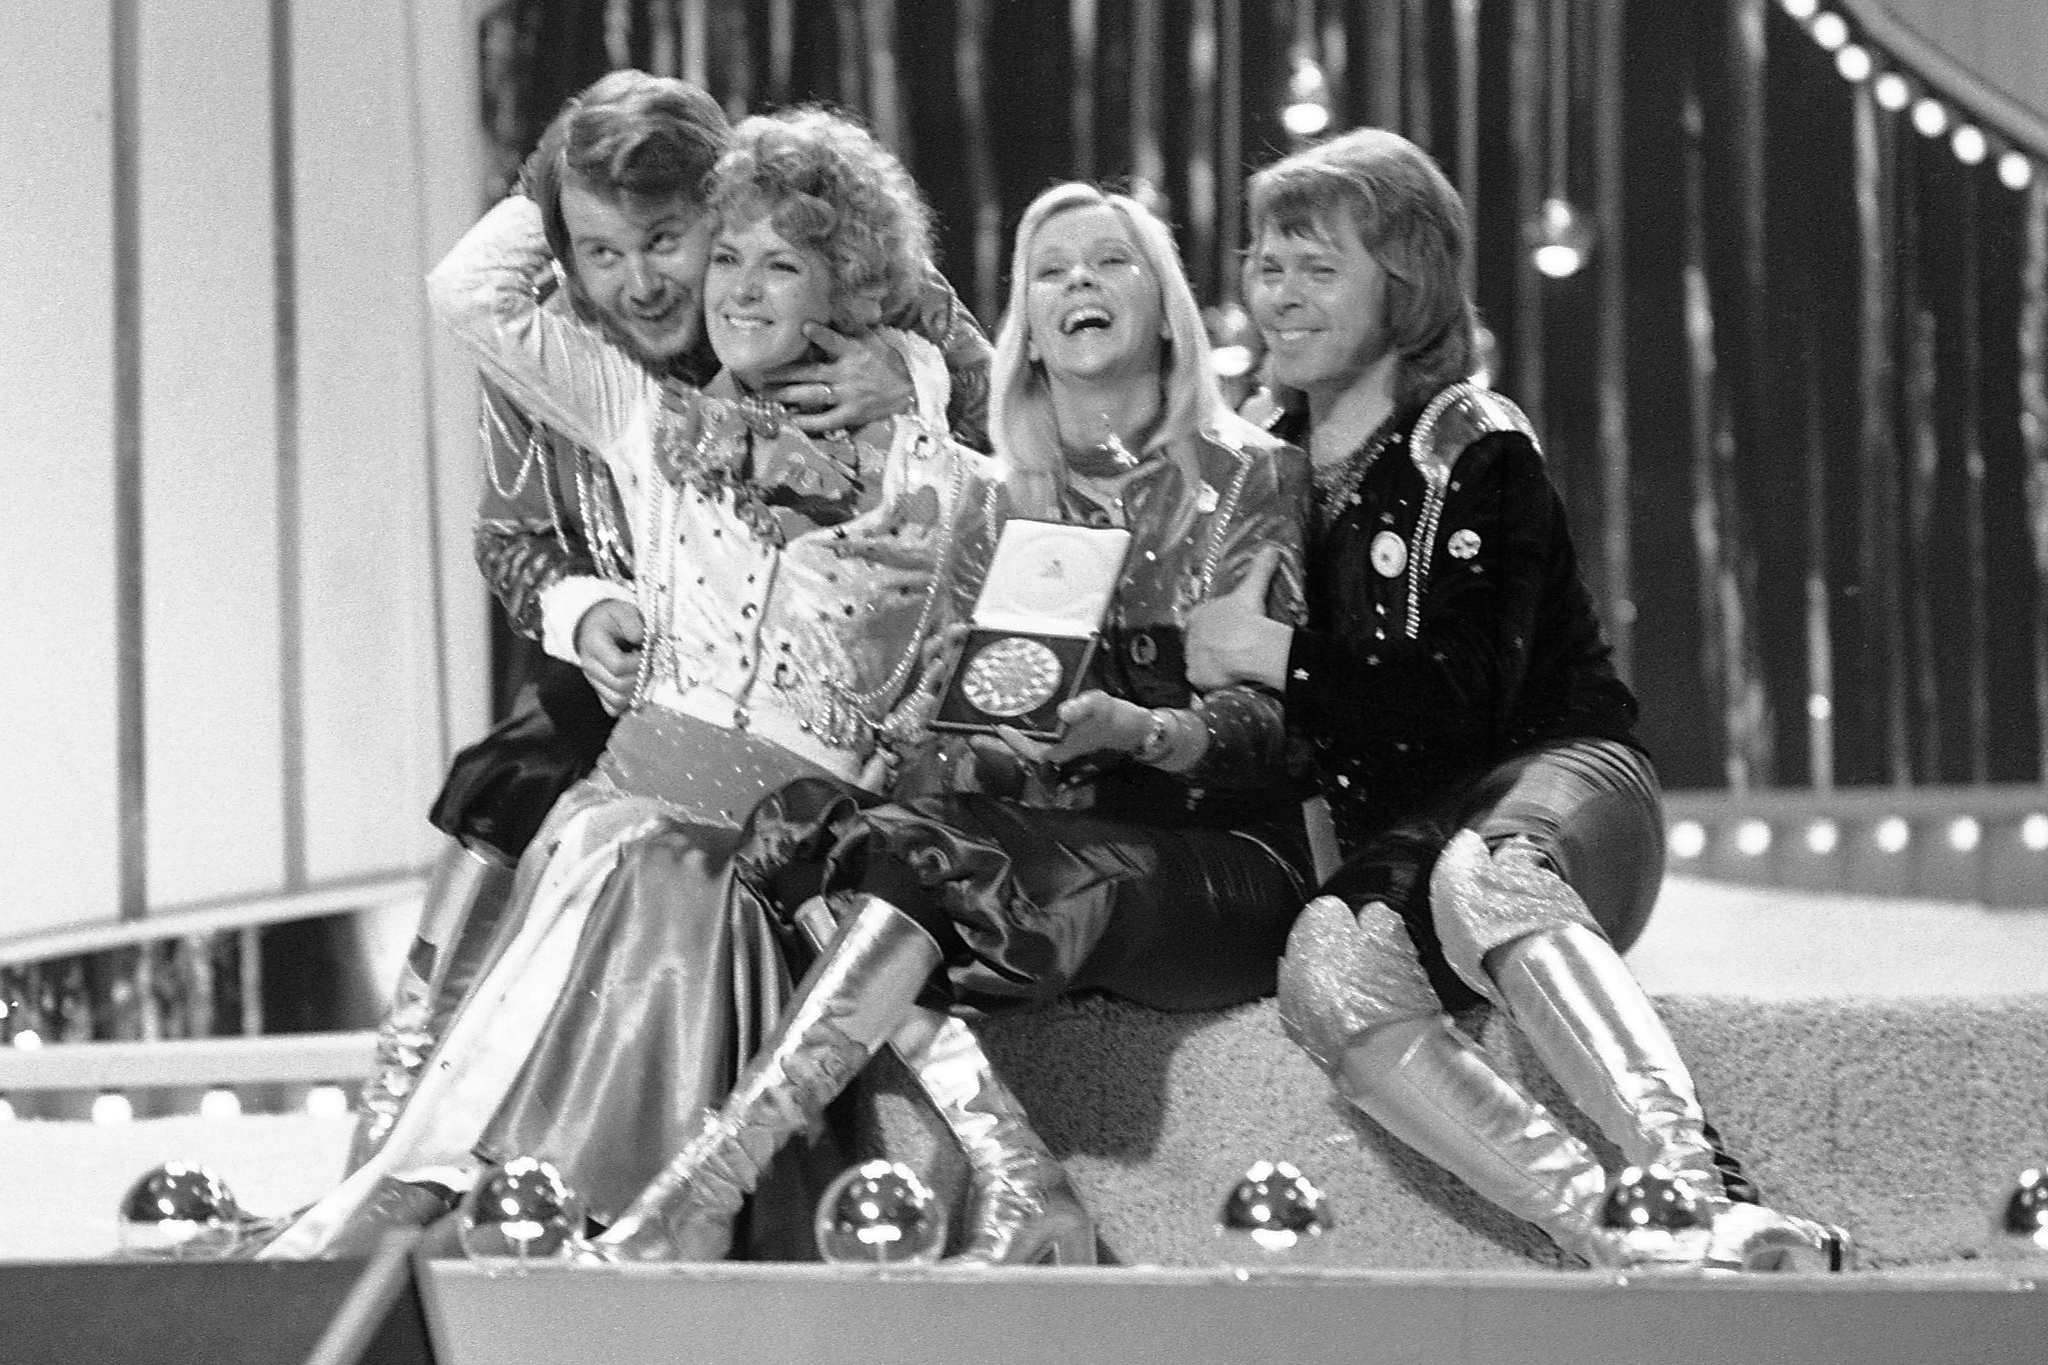 Swedish pop group ABBA celebrate winning the 1974 Eurovision Song Contest on stage at the Brighton Dome in England.